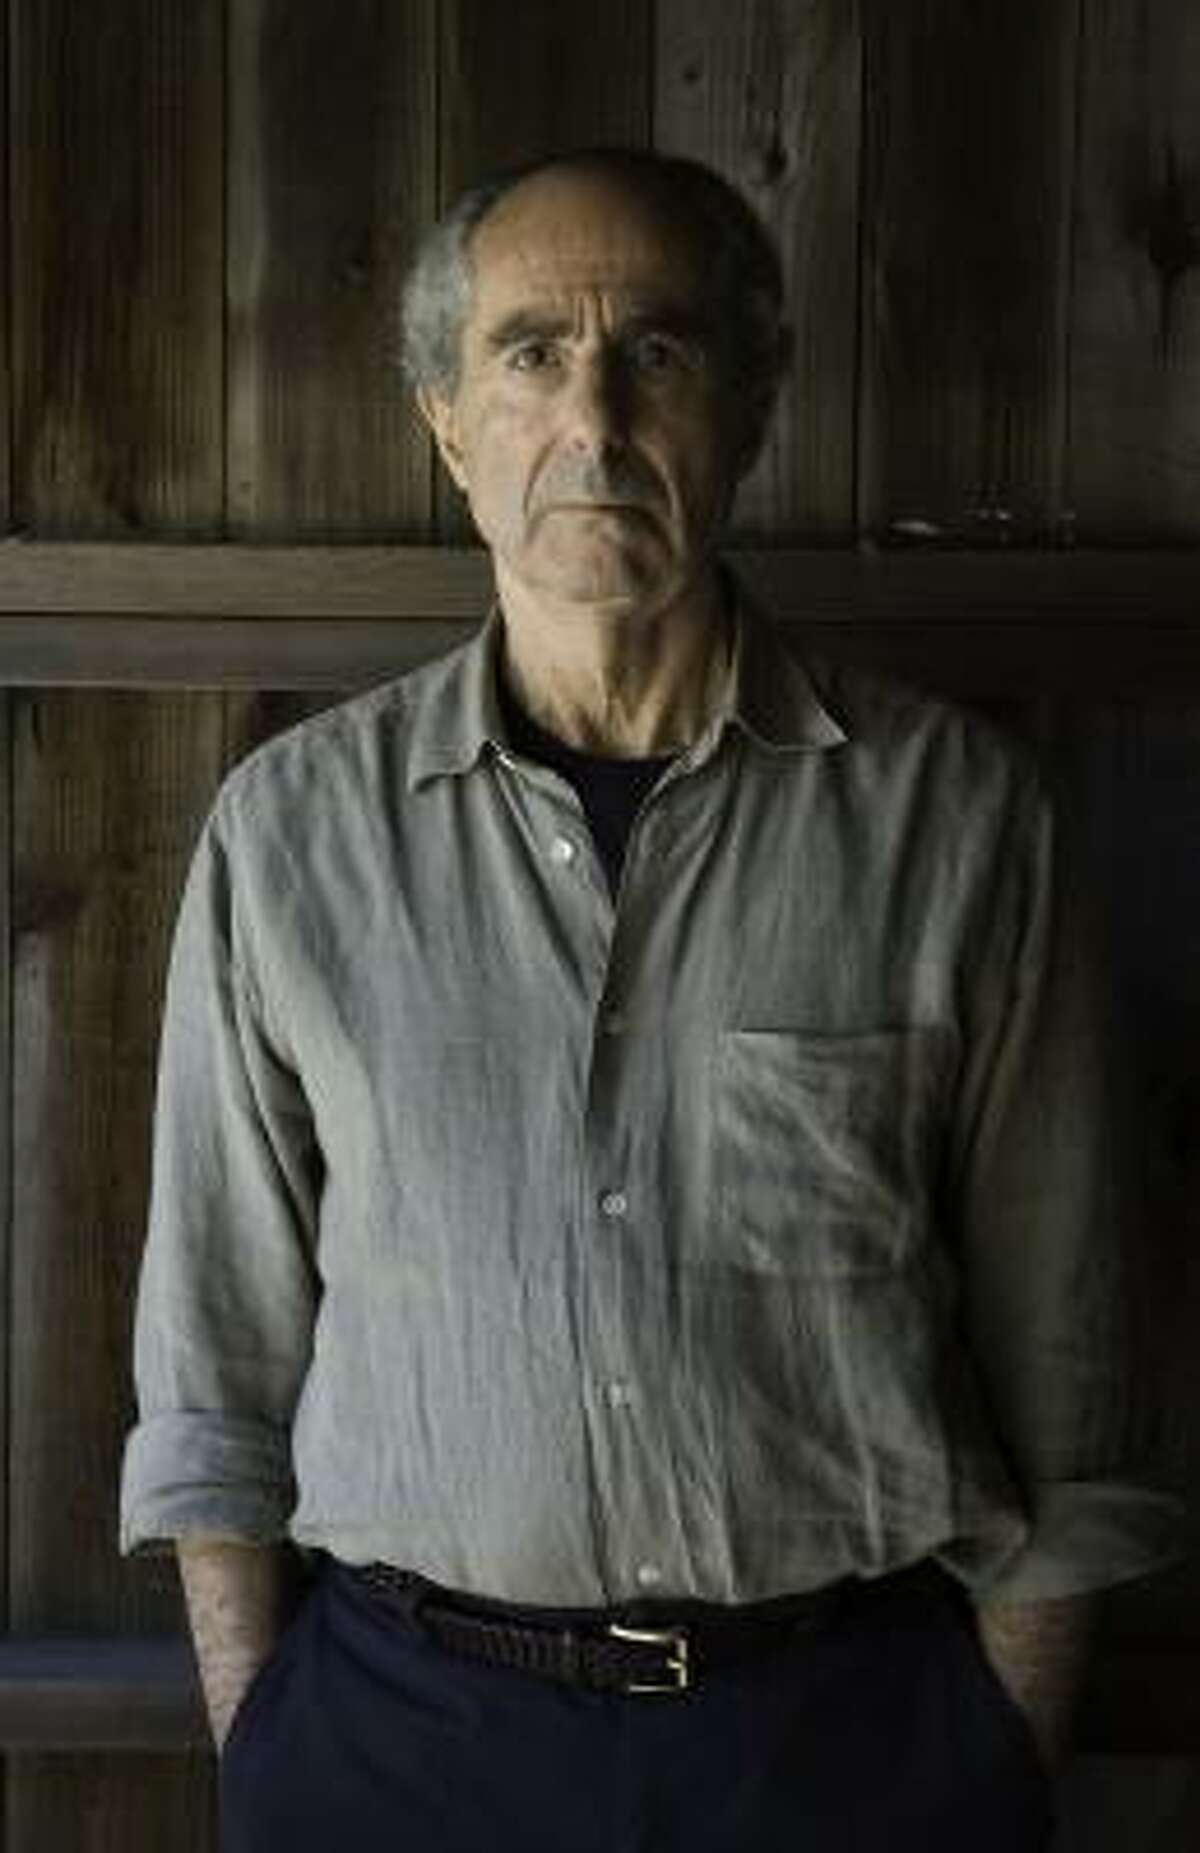 Novelist Philip Roth is 74 and has been writing about Nathan Zuckerman since the 1970s.